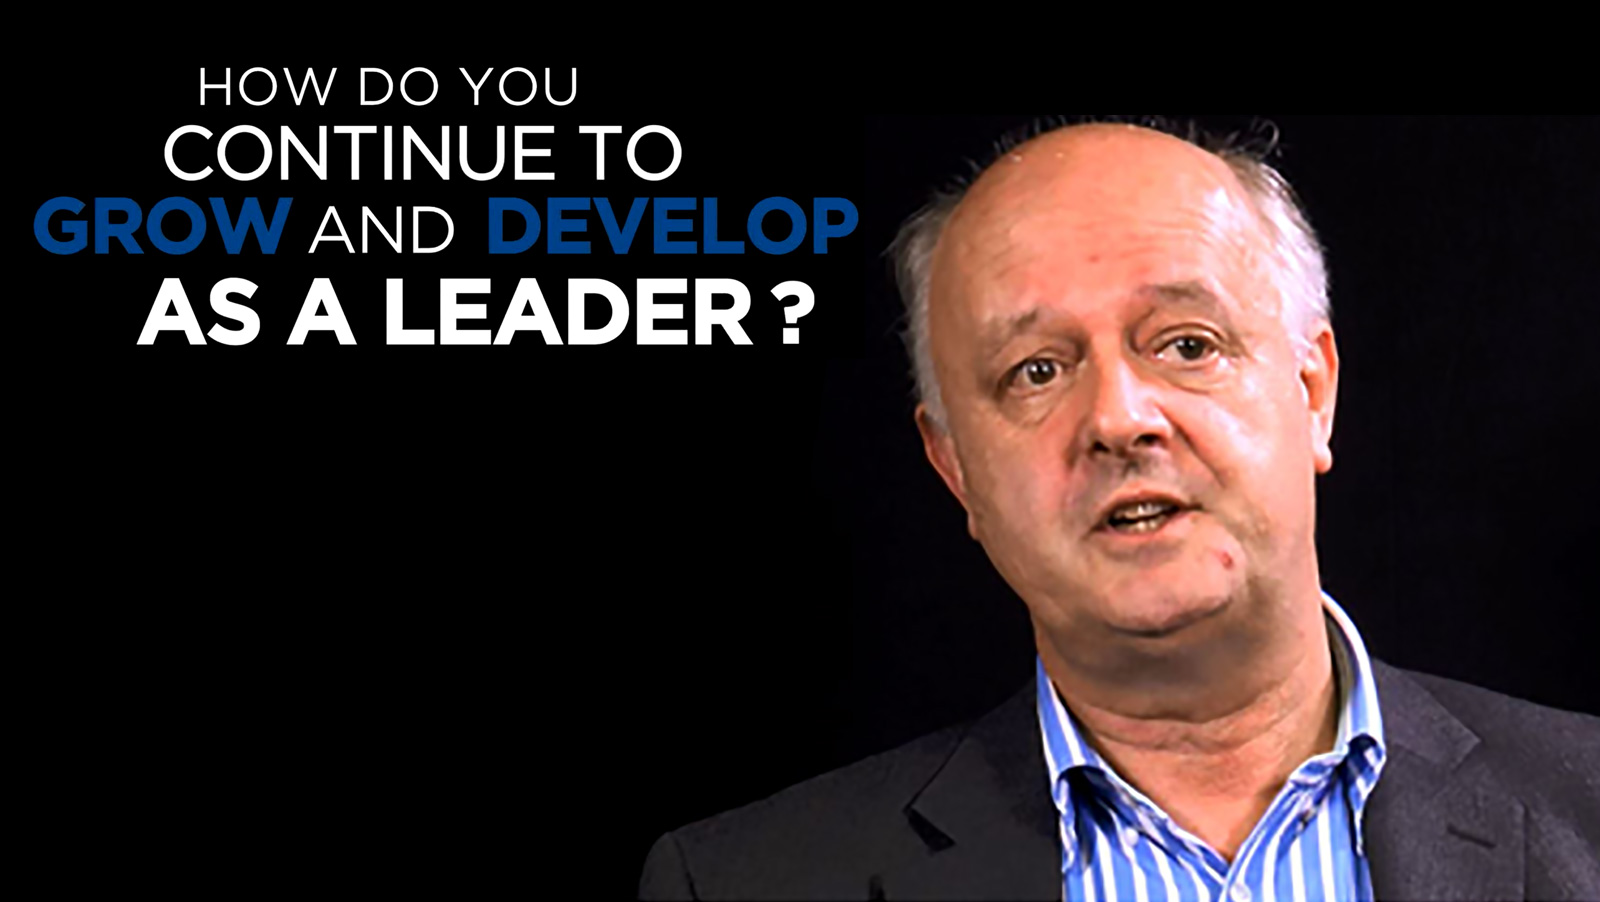 Mark Blandford: Shared Experince - What do you do to ensure you continue to and develop as a leader?